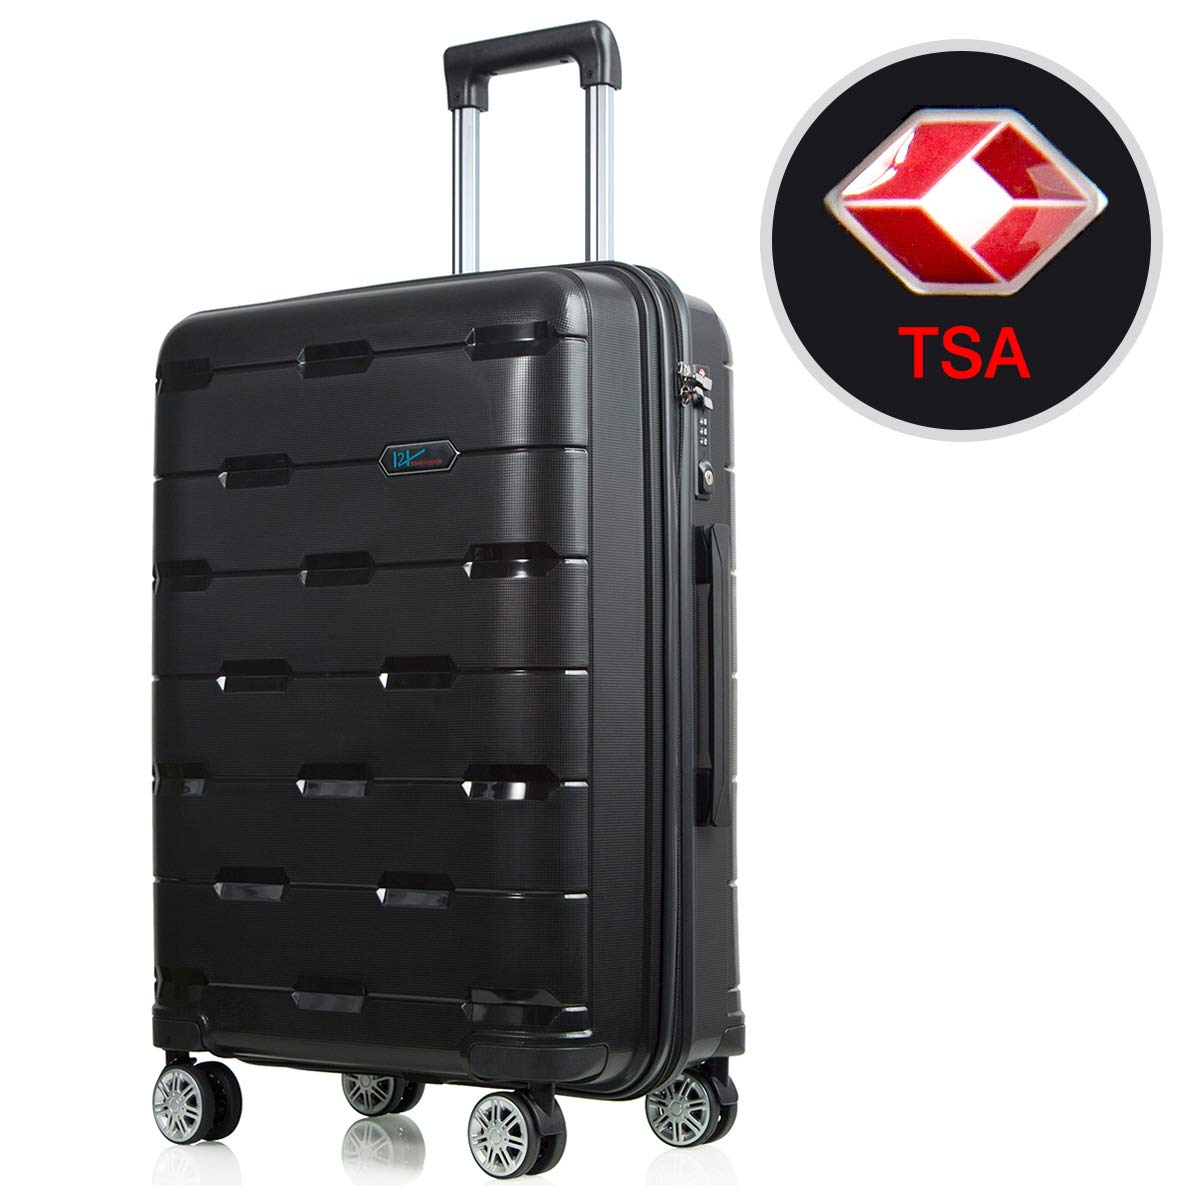 Lightweight Luggage Sets Hardside Spinner Trolley Expandable Luggage Bag for Travel and Business Luggage Set 24'' (Black)